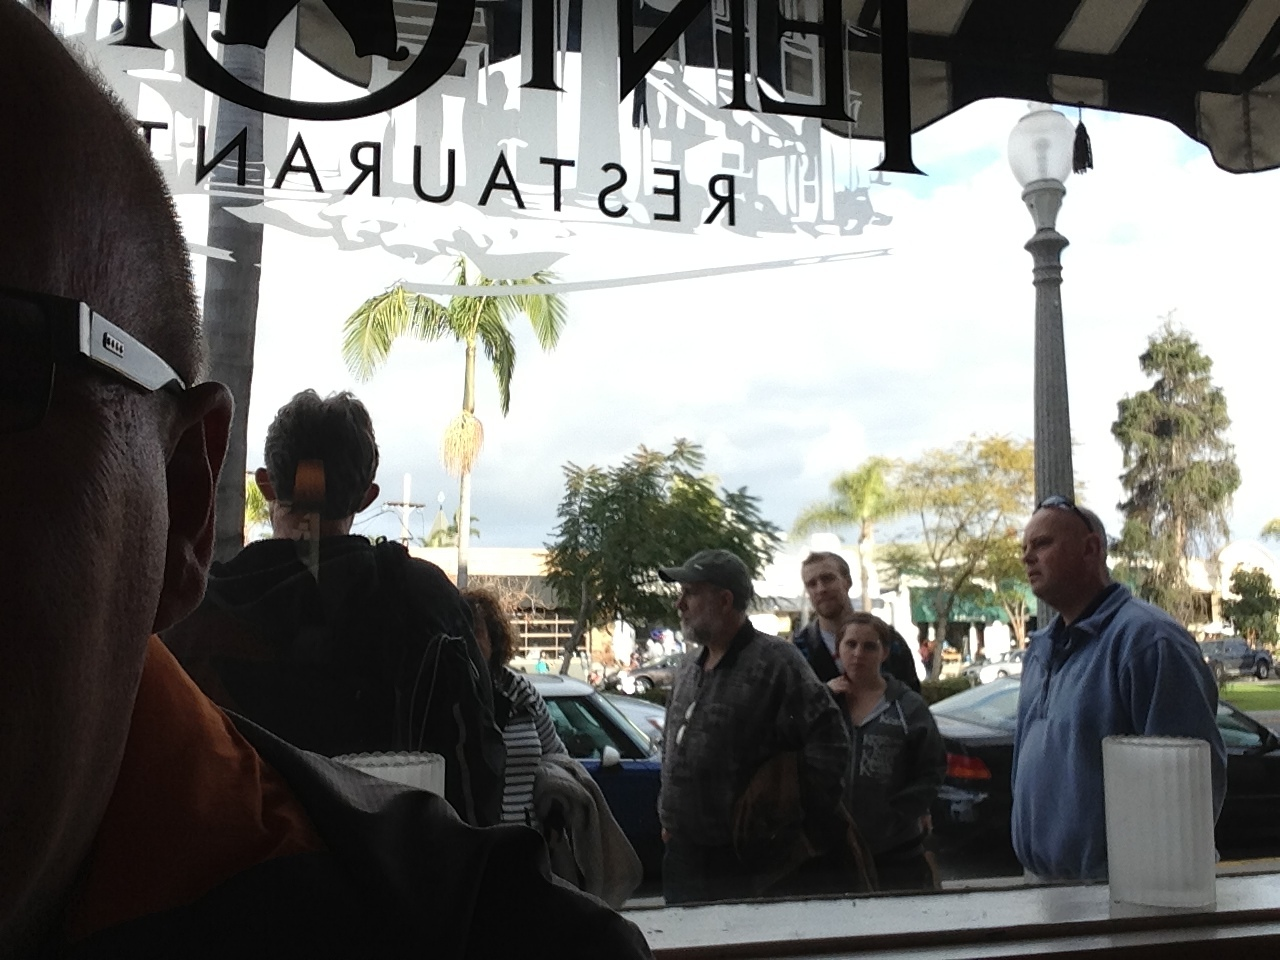 A tour group stopped right in front of the window as we were eating. I felt like I was in a fish bowl for about fifteen minutes.